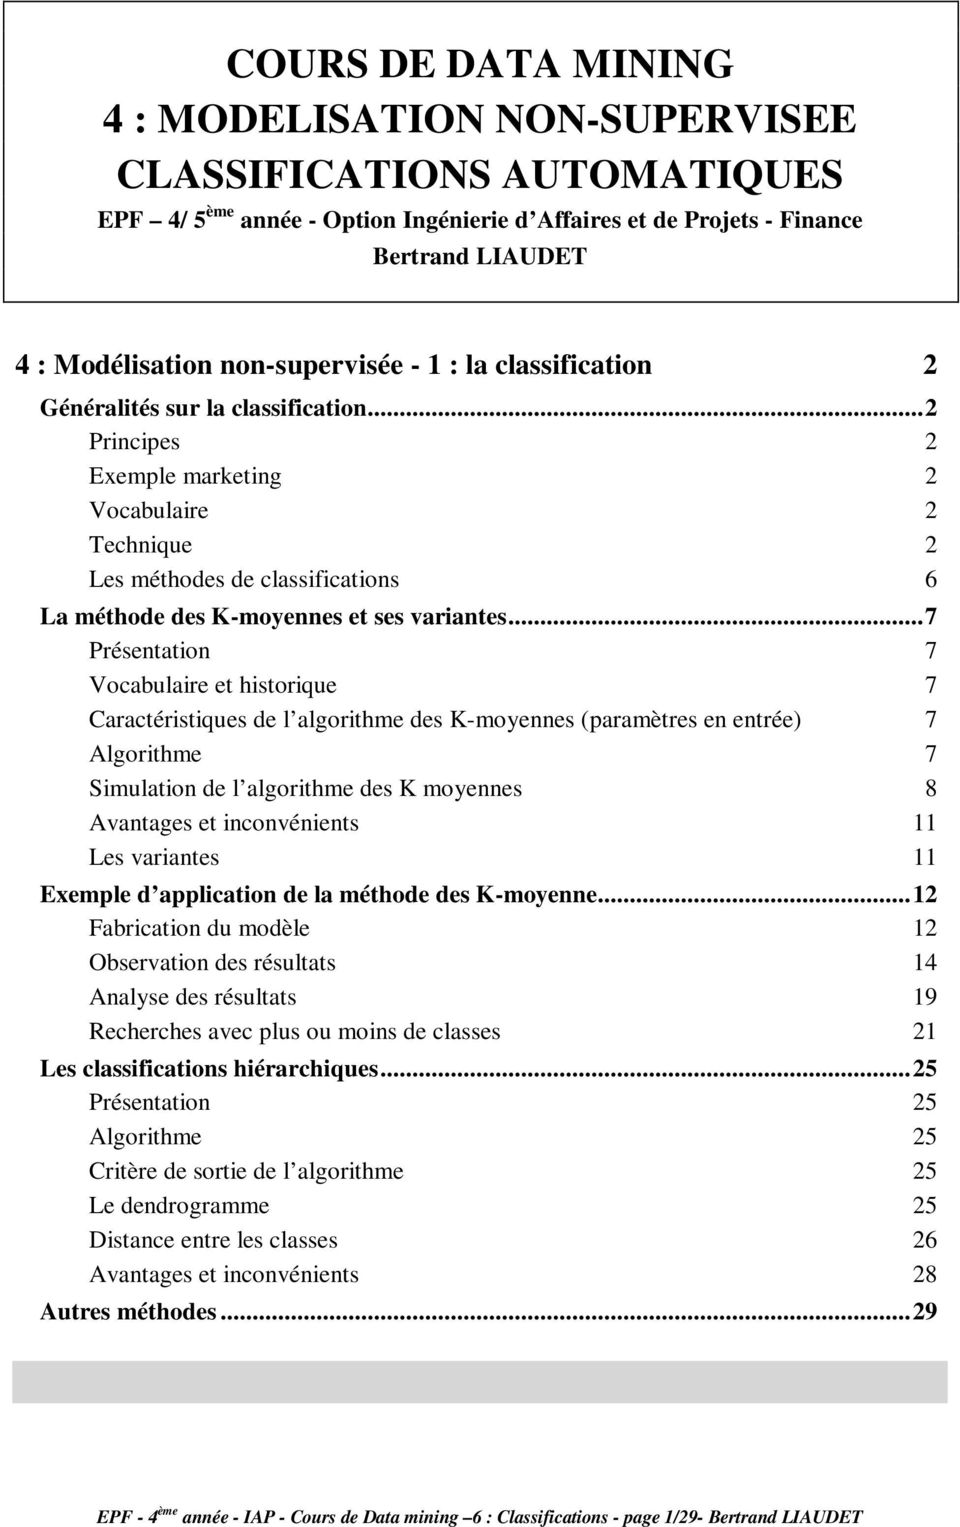 ..2 Principes 2 Exemple marketing 2 Vocabulaire 2 Technique 2 Les méthodes de classifications 6 La méthode des K-moyennes et ses variantes.